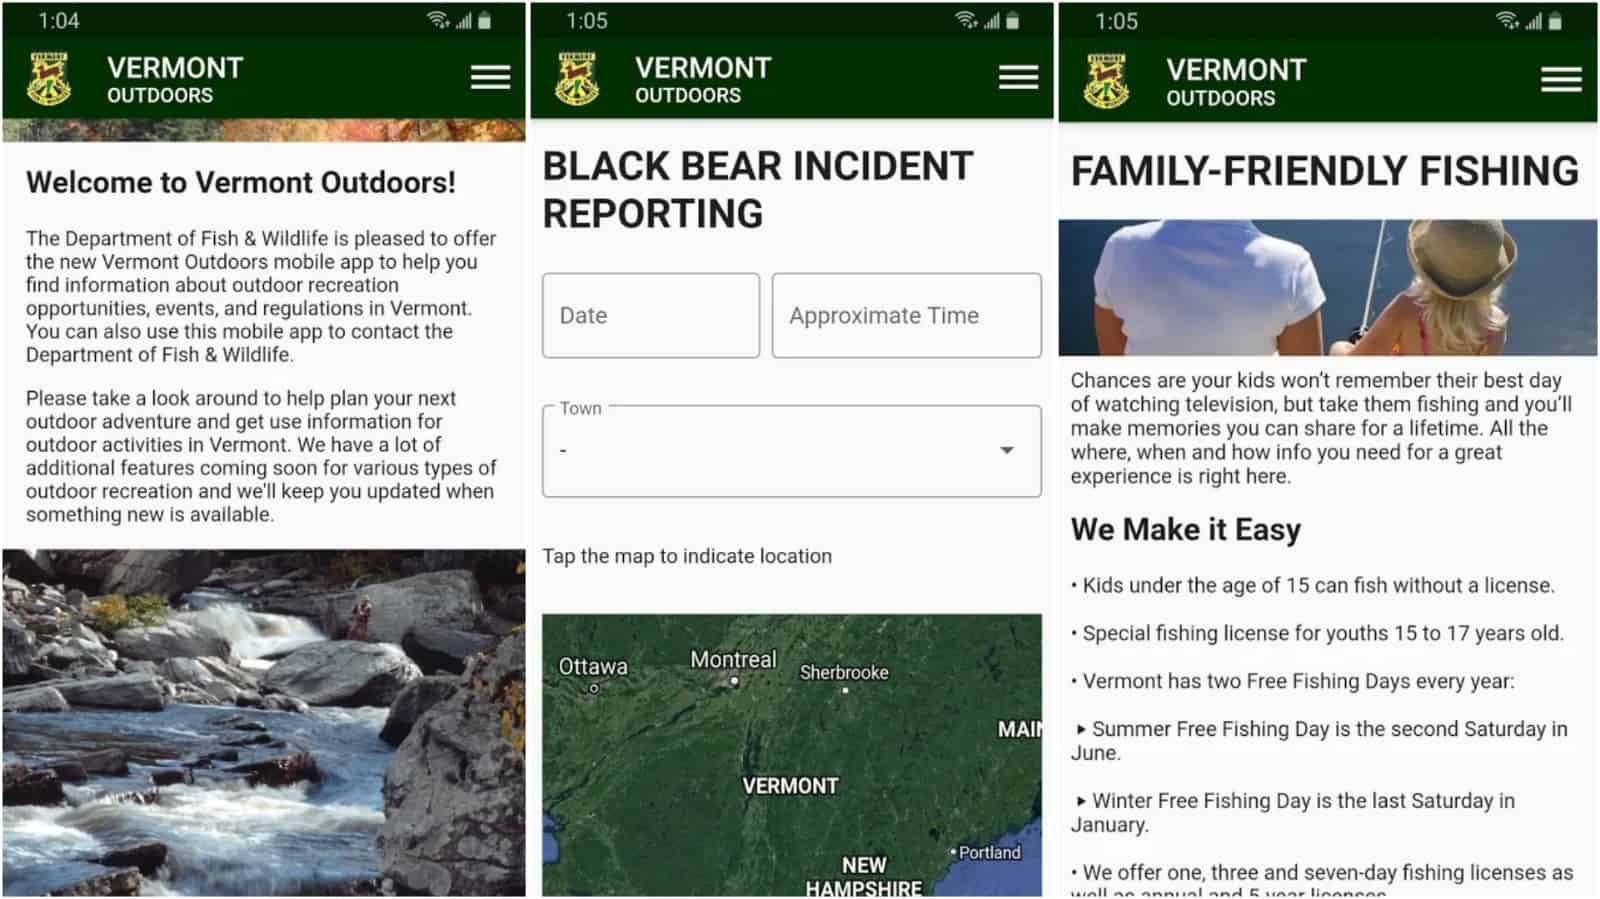 Vermont Outdoors app grid image